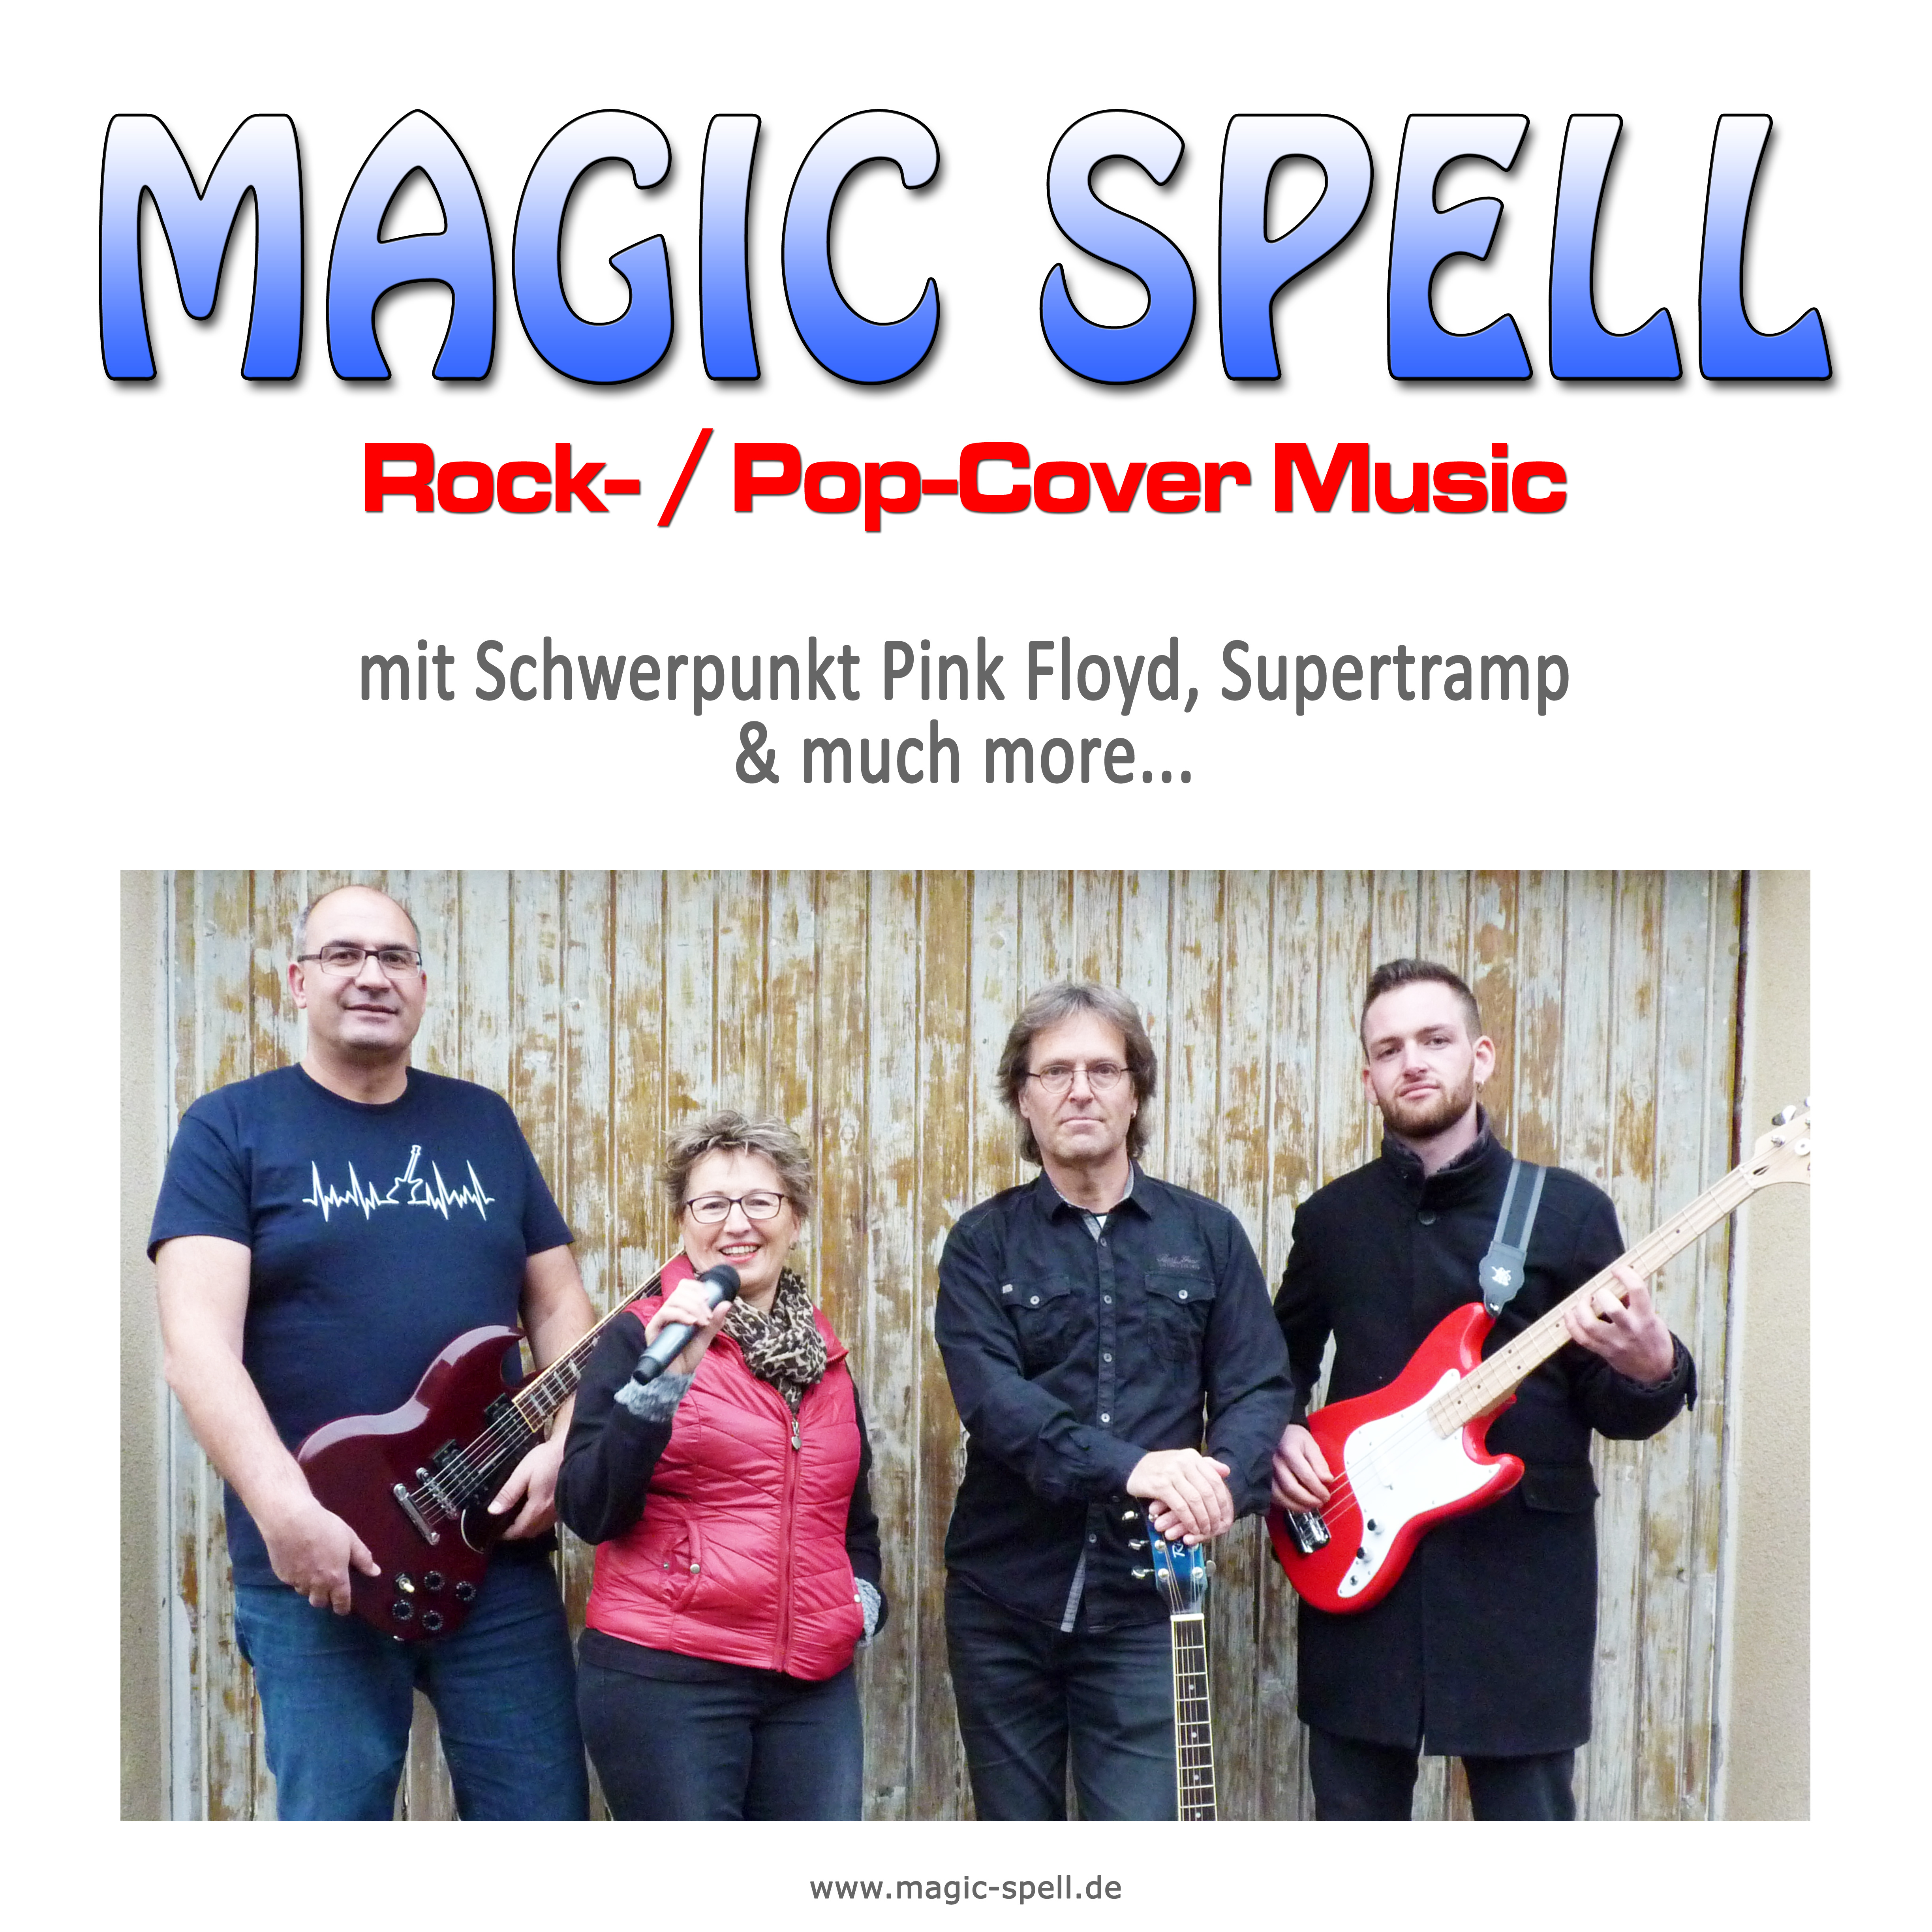 Magic Spell Pressefoto